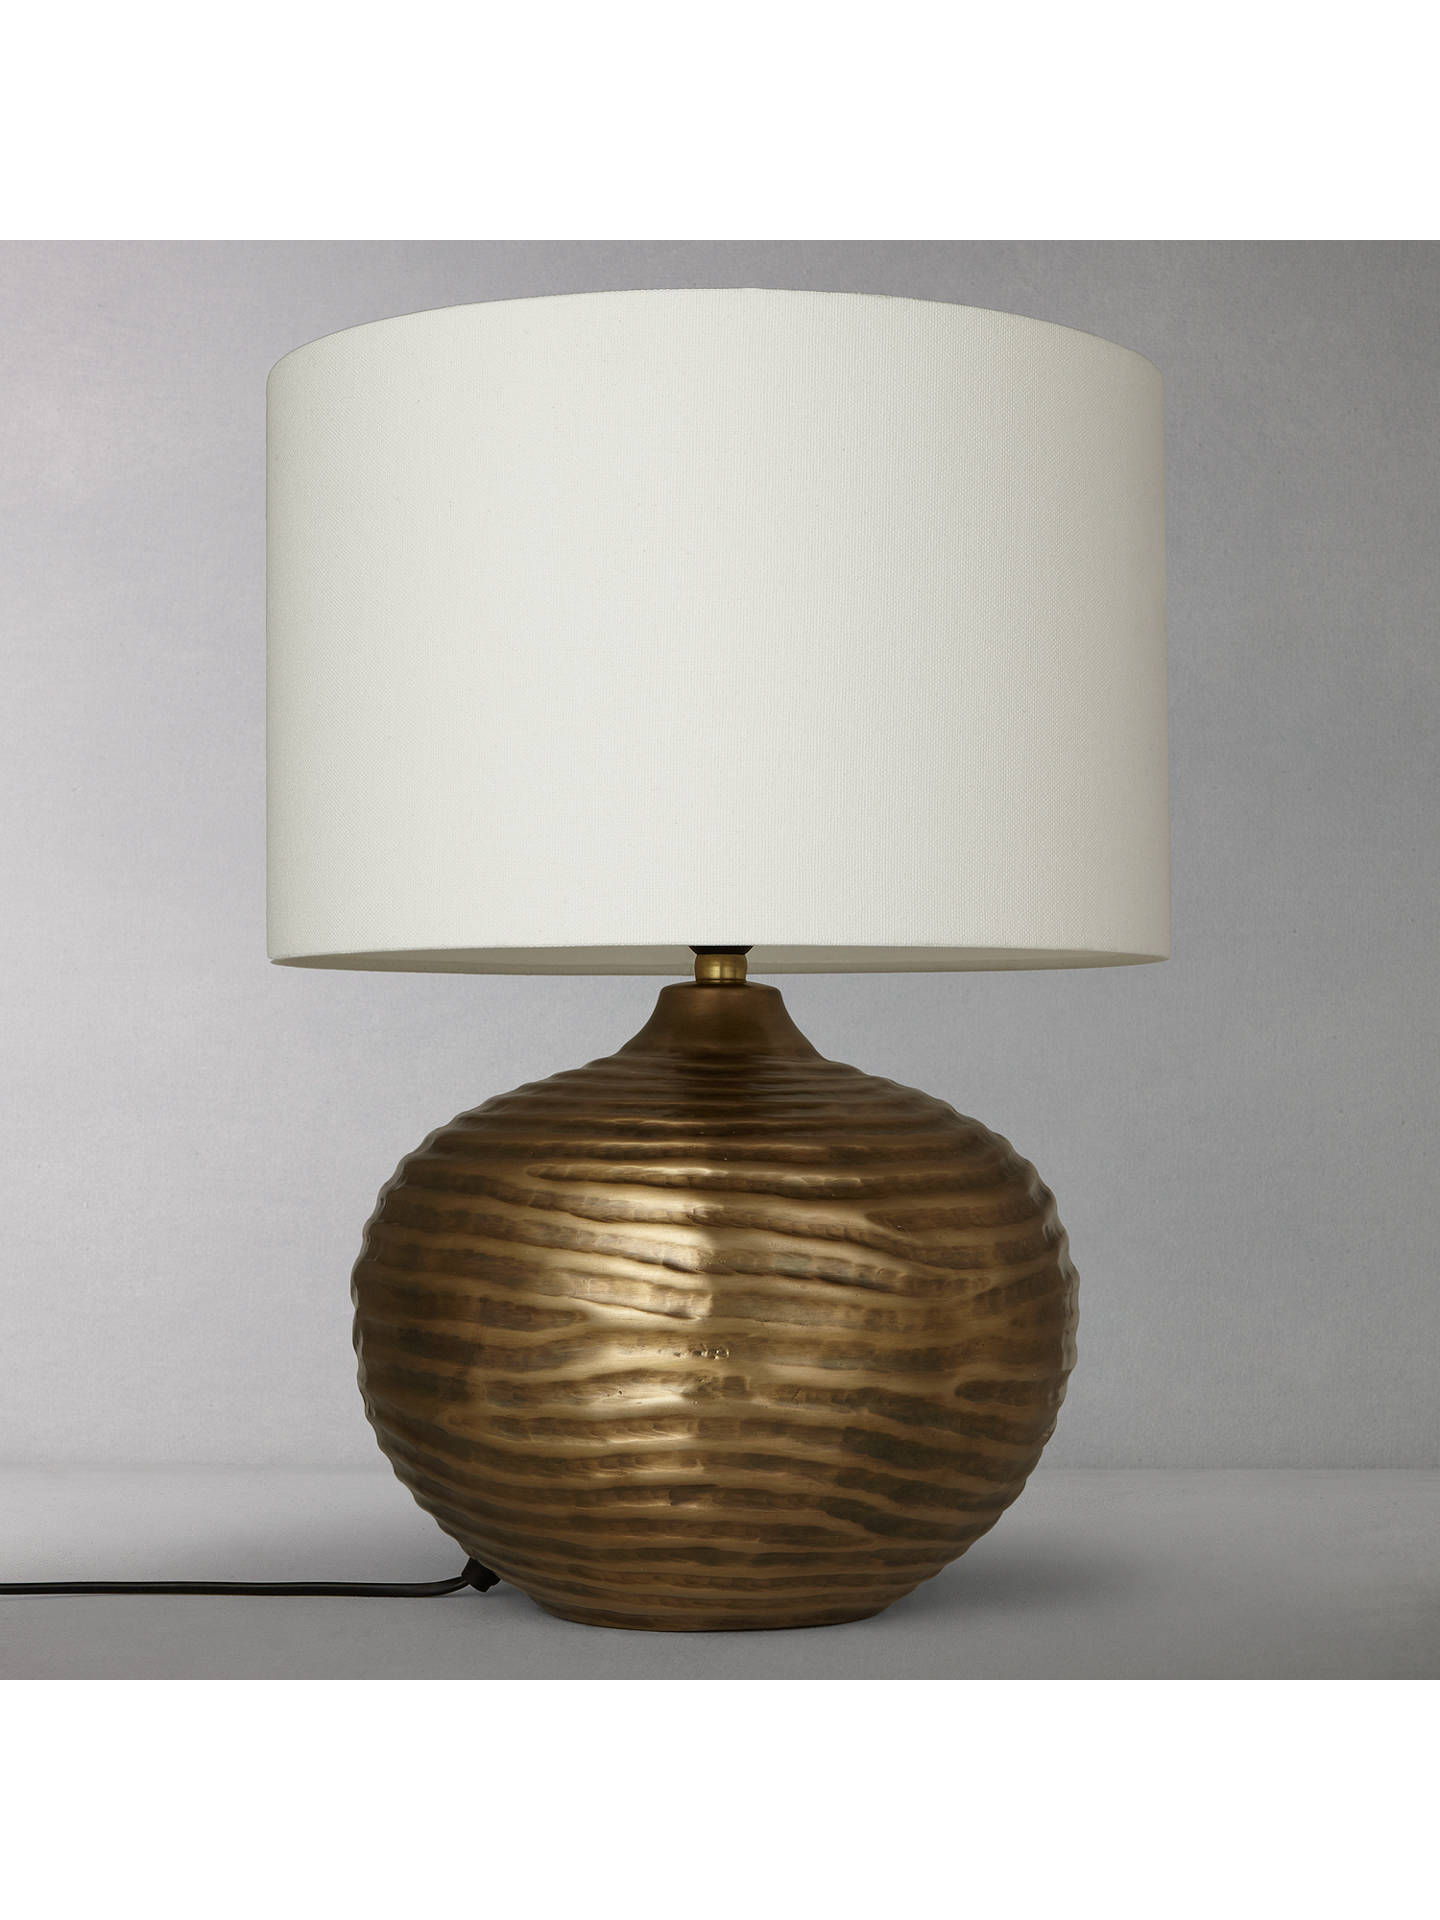 BuyJohn Lewis & Partners Ise Waves Metal Table Lamp, Antique Brass Online at johnlewis.com